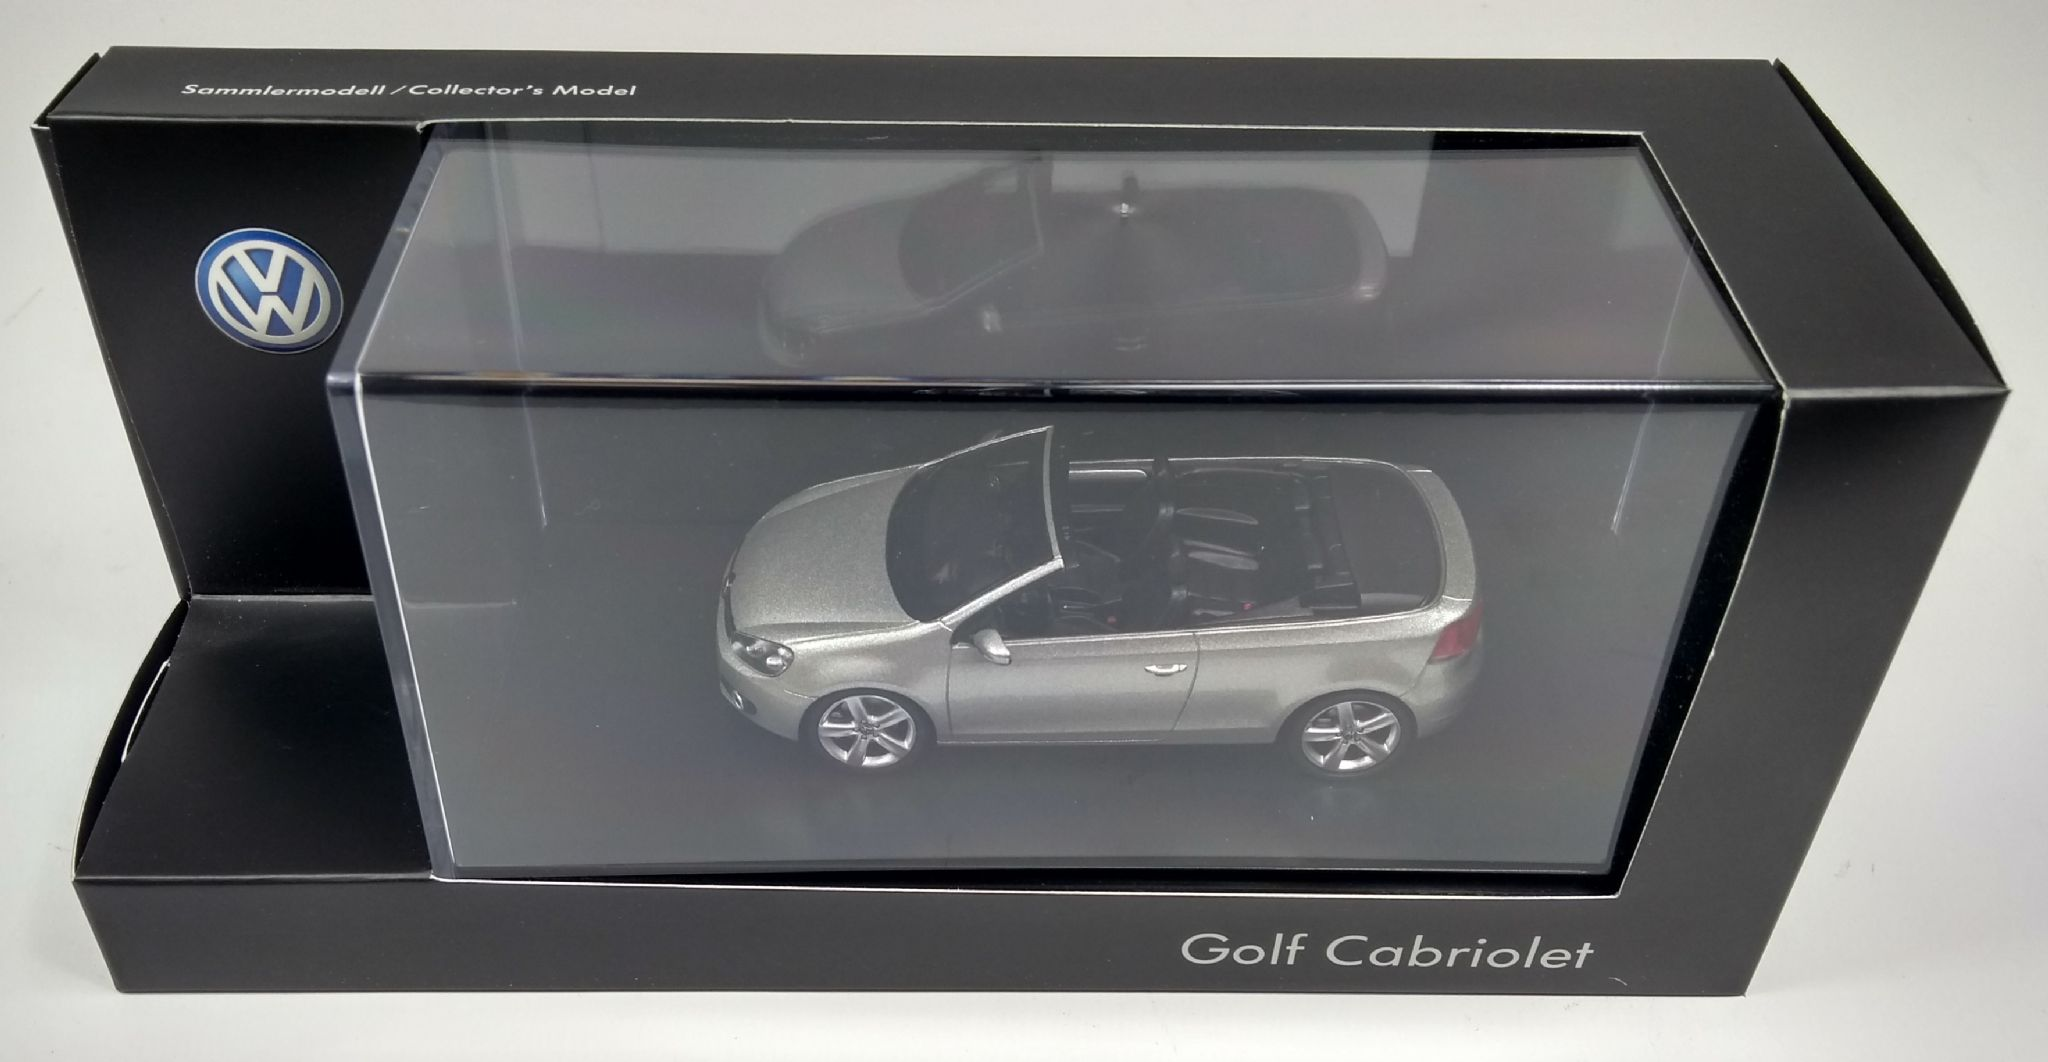 GENUINE VW GOLF MK6 CABRIOLET TUNGSTEN SILVER 143 SCALE DIECAST MODEL CAR